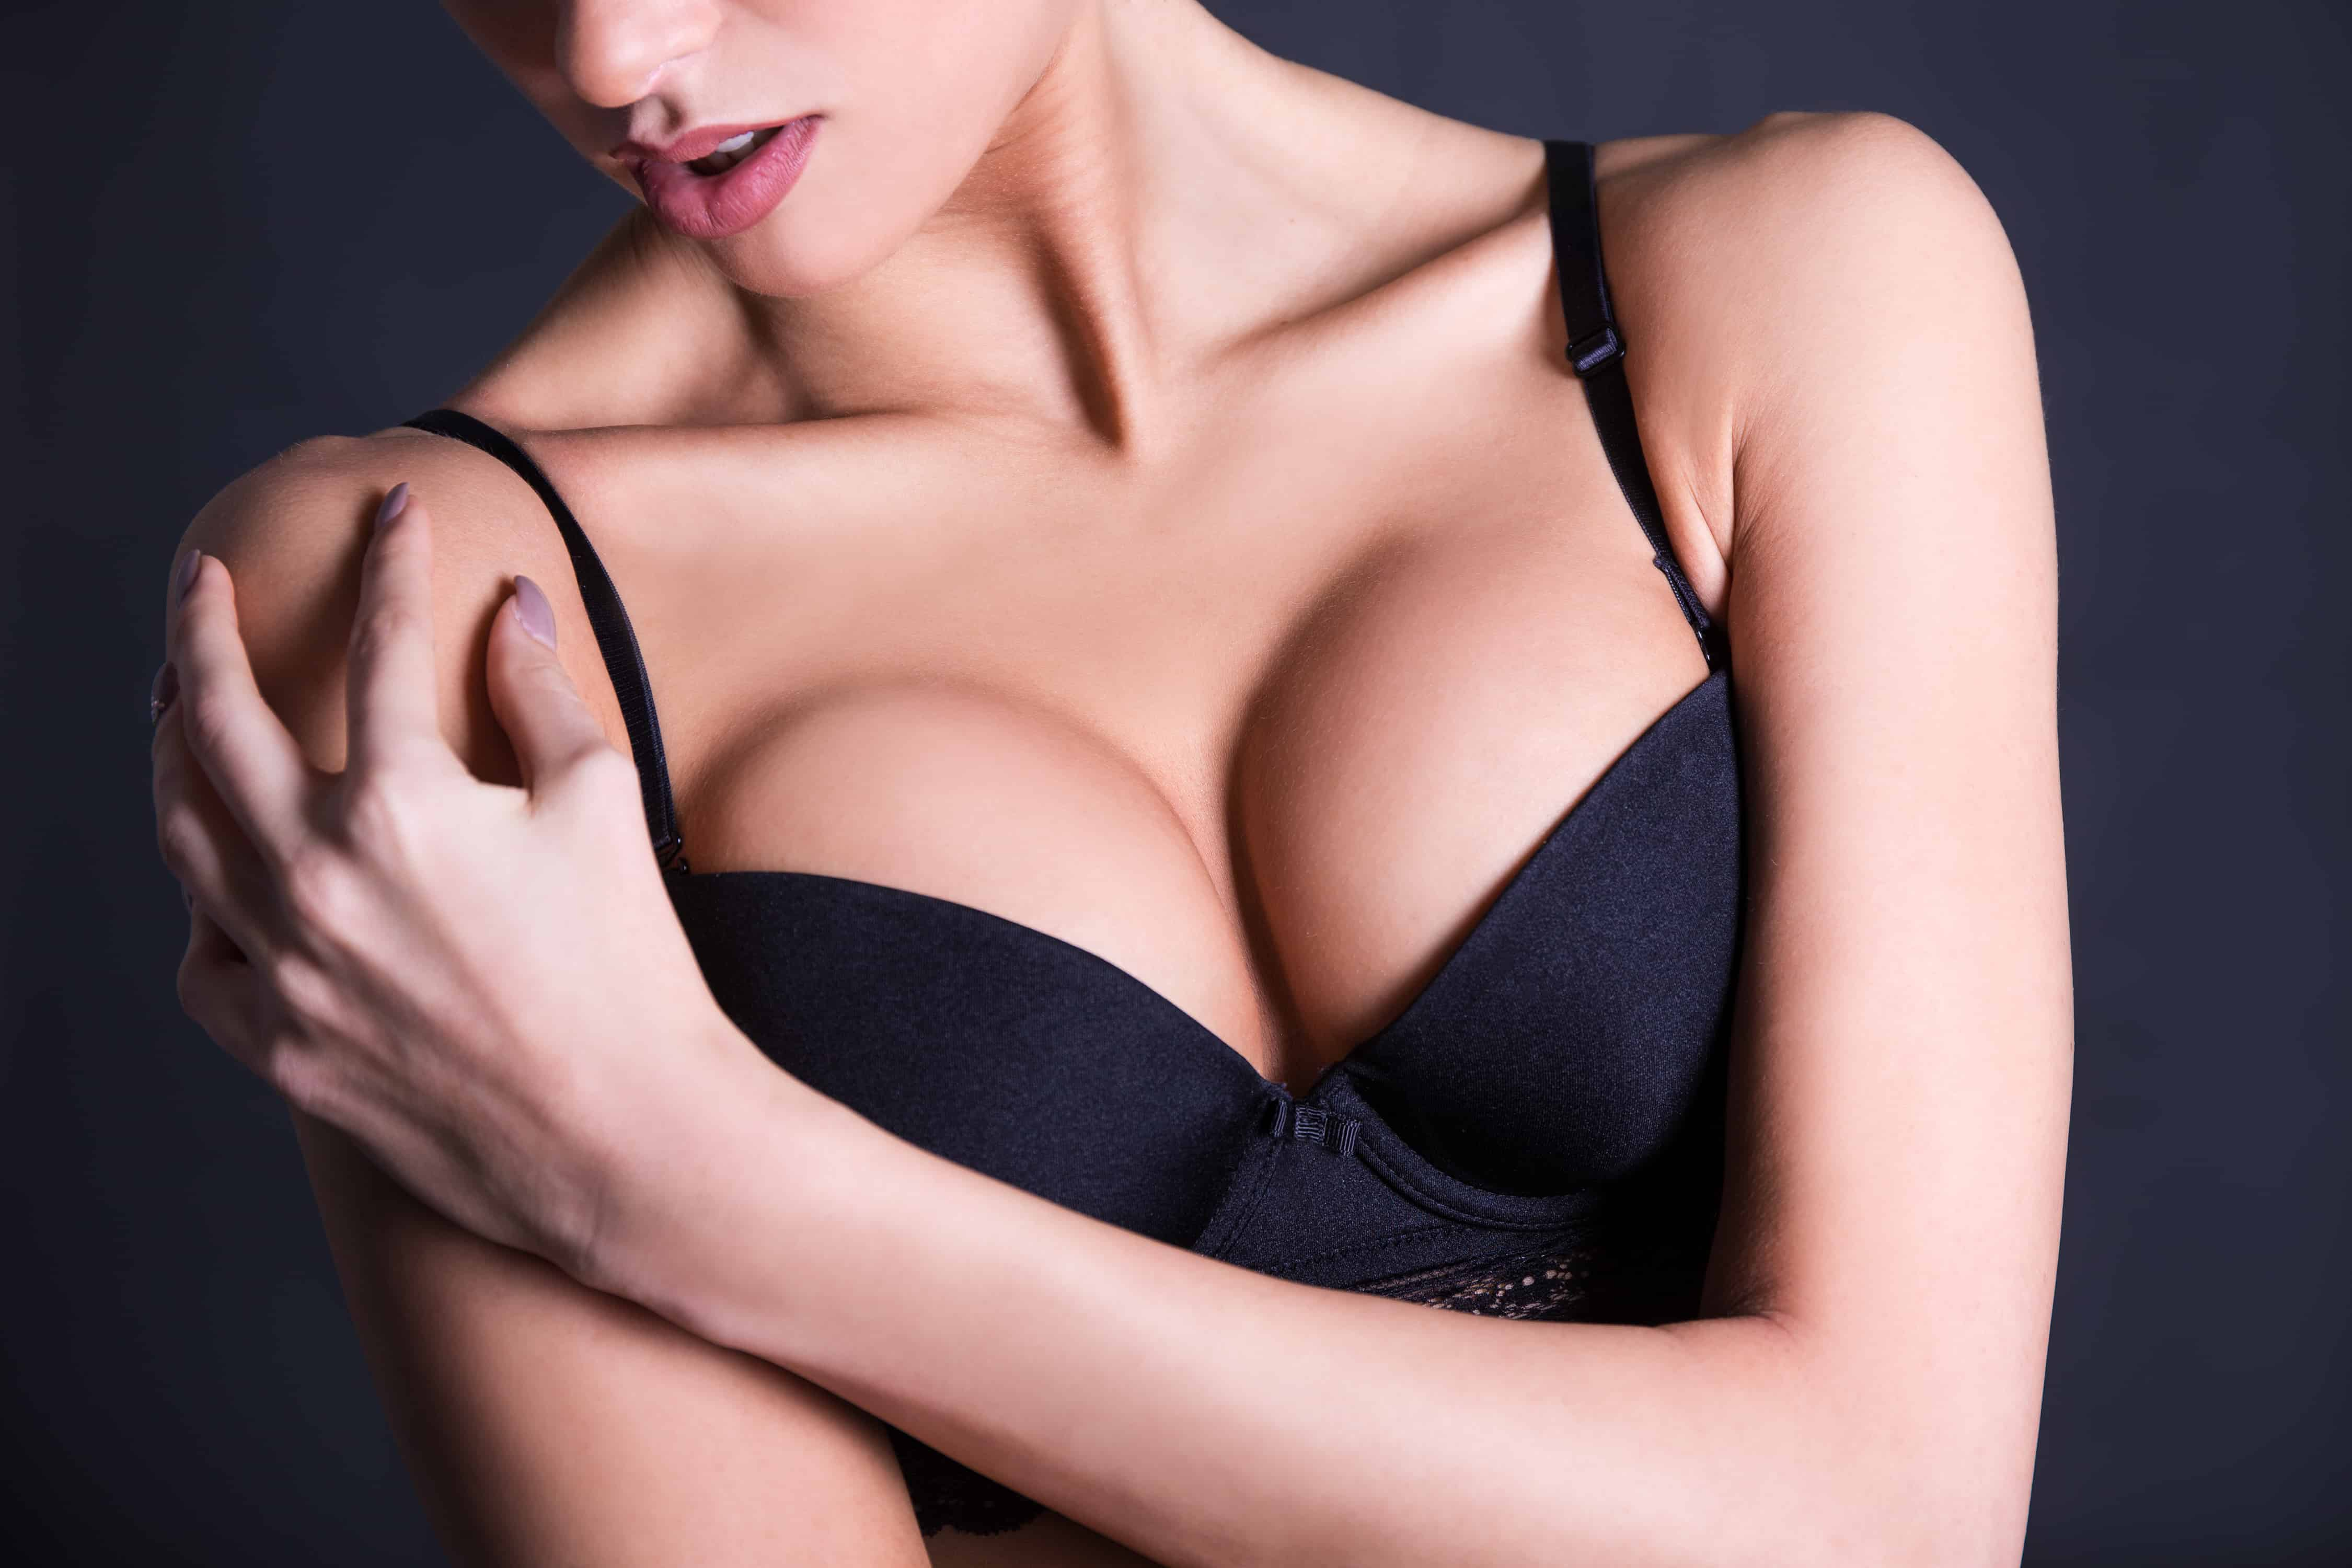 japanese-sex-best-breast-picture-vagina-naked